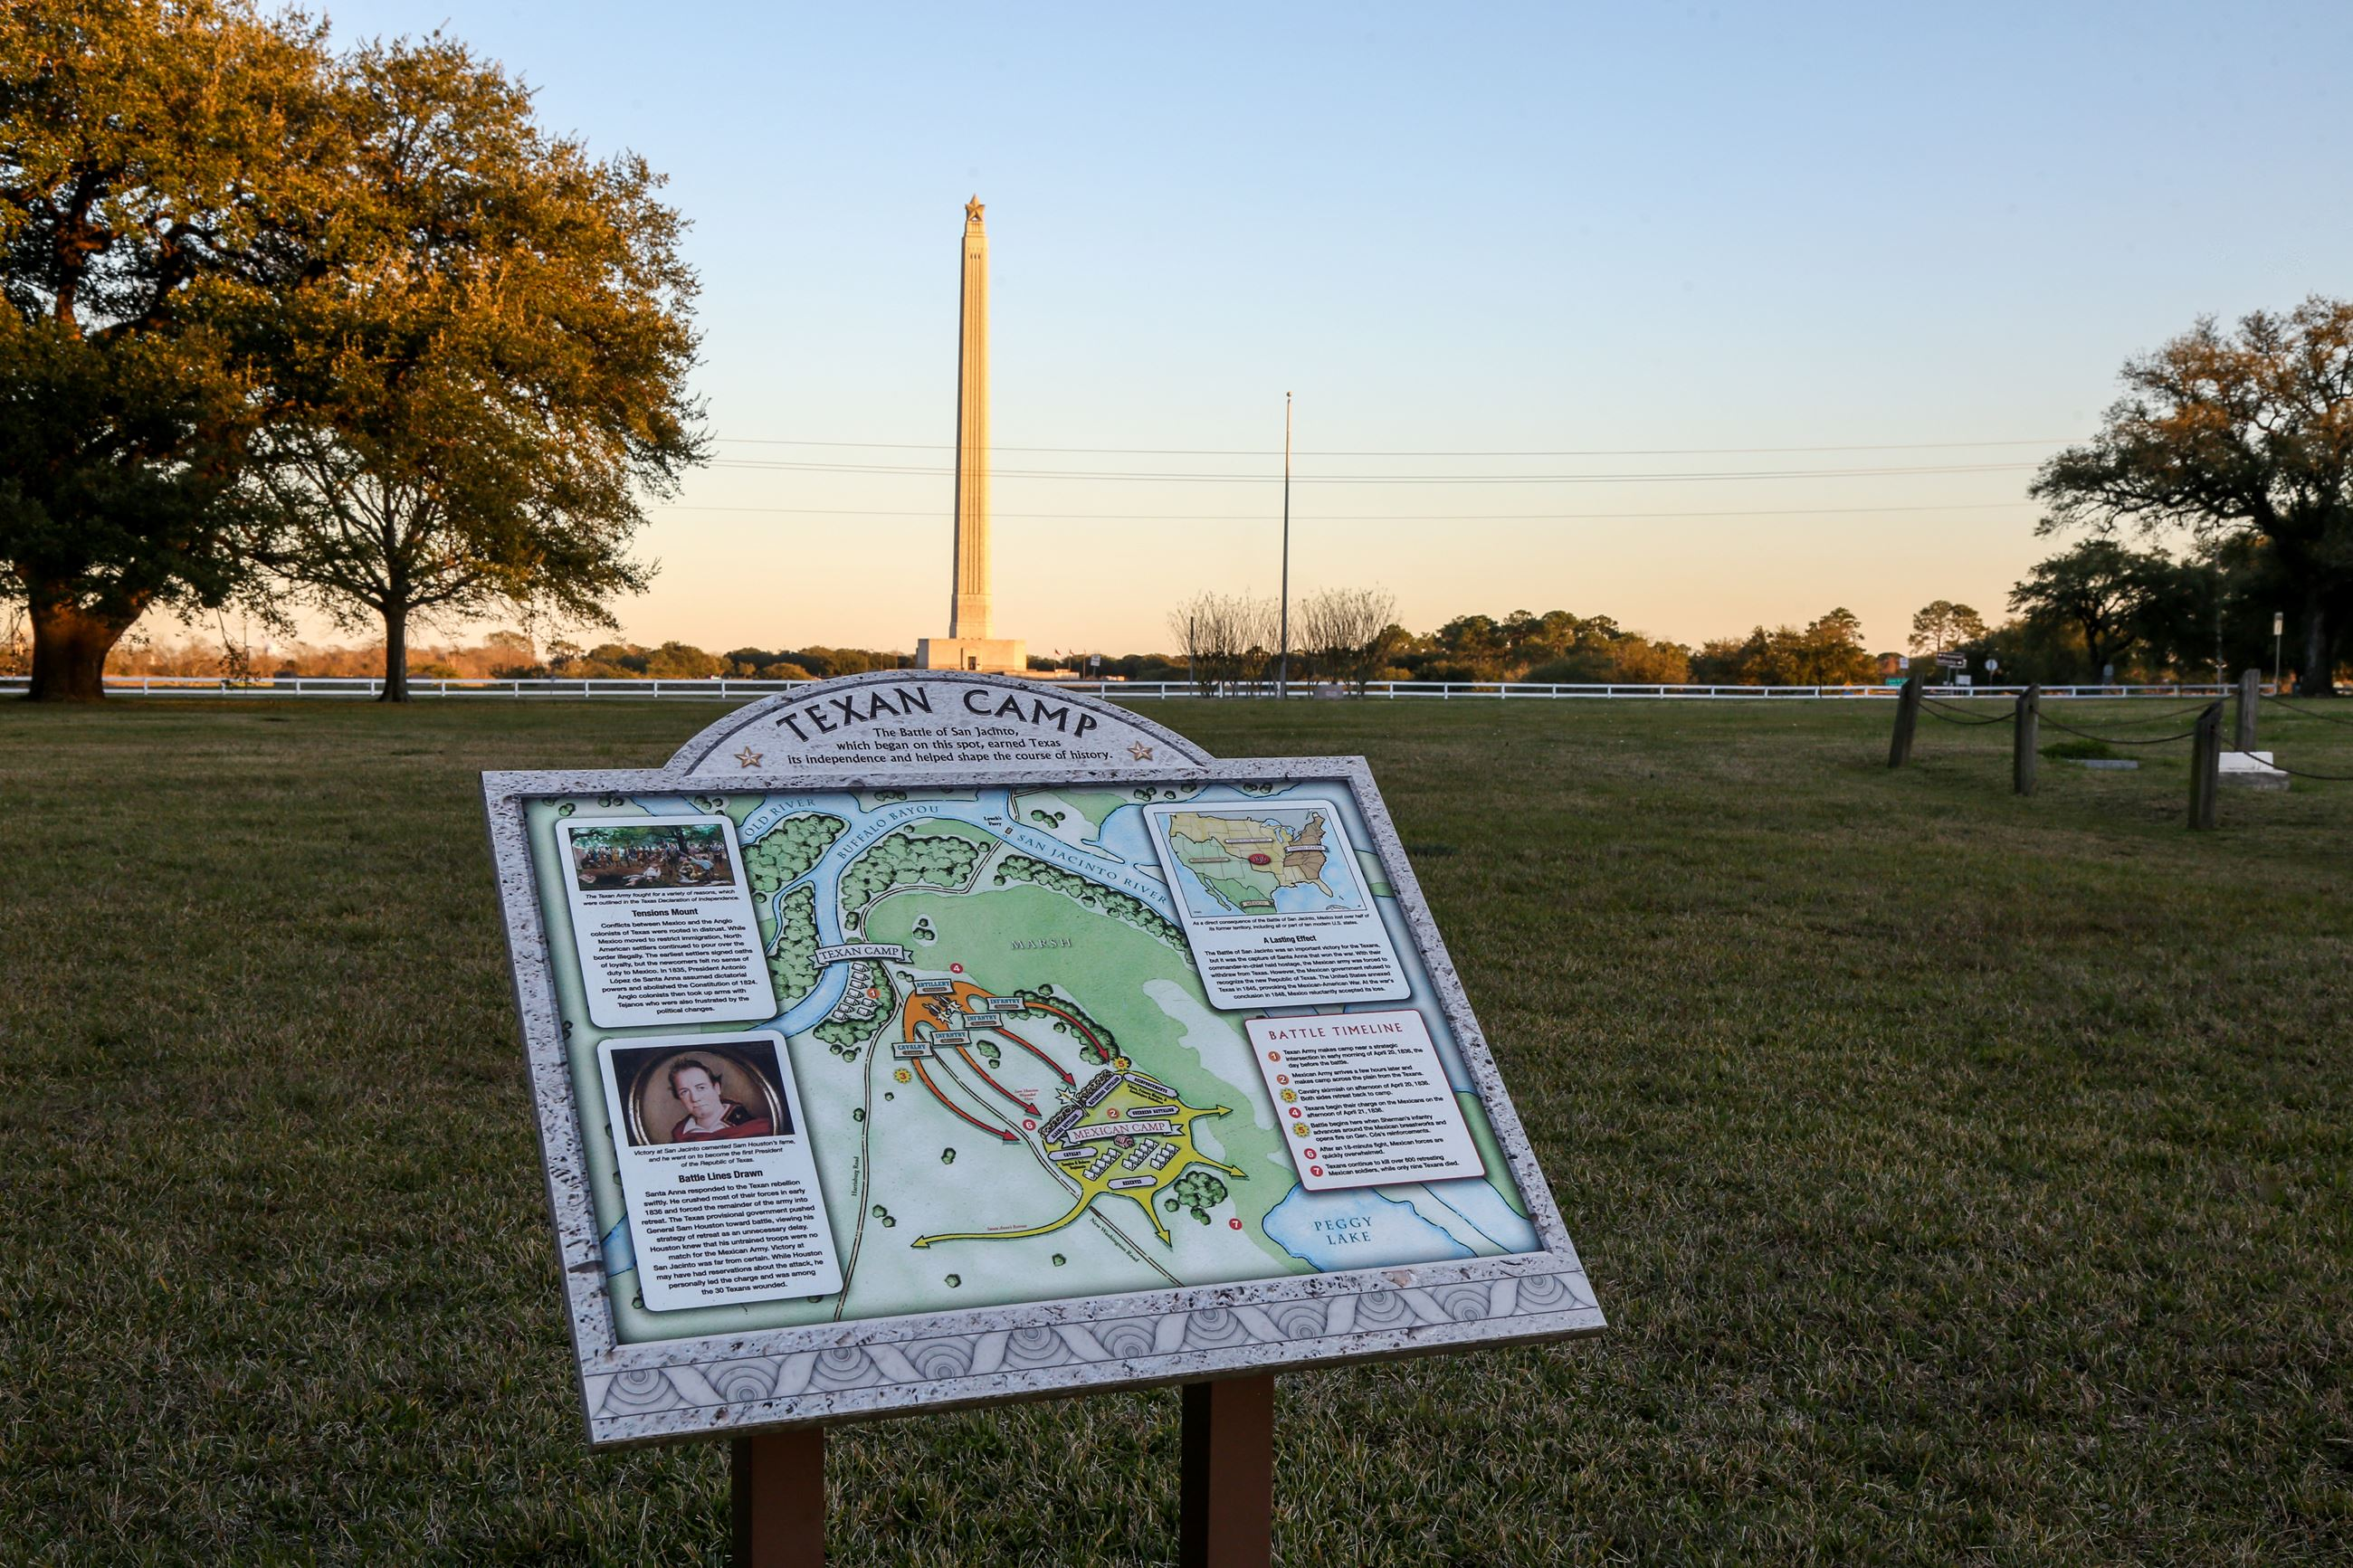 About the San Jacinto Battlefield